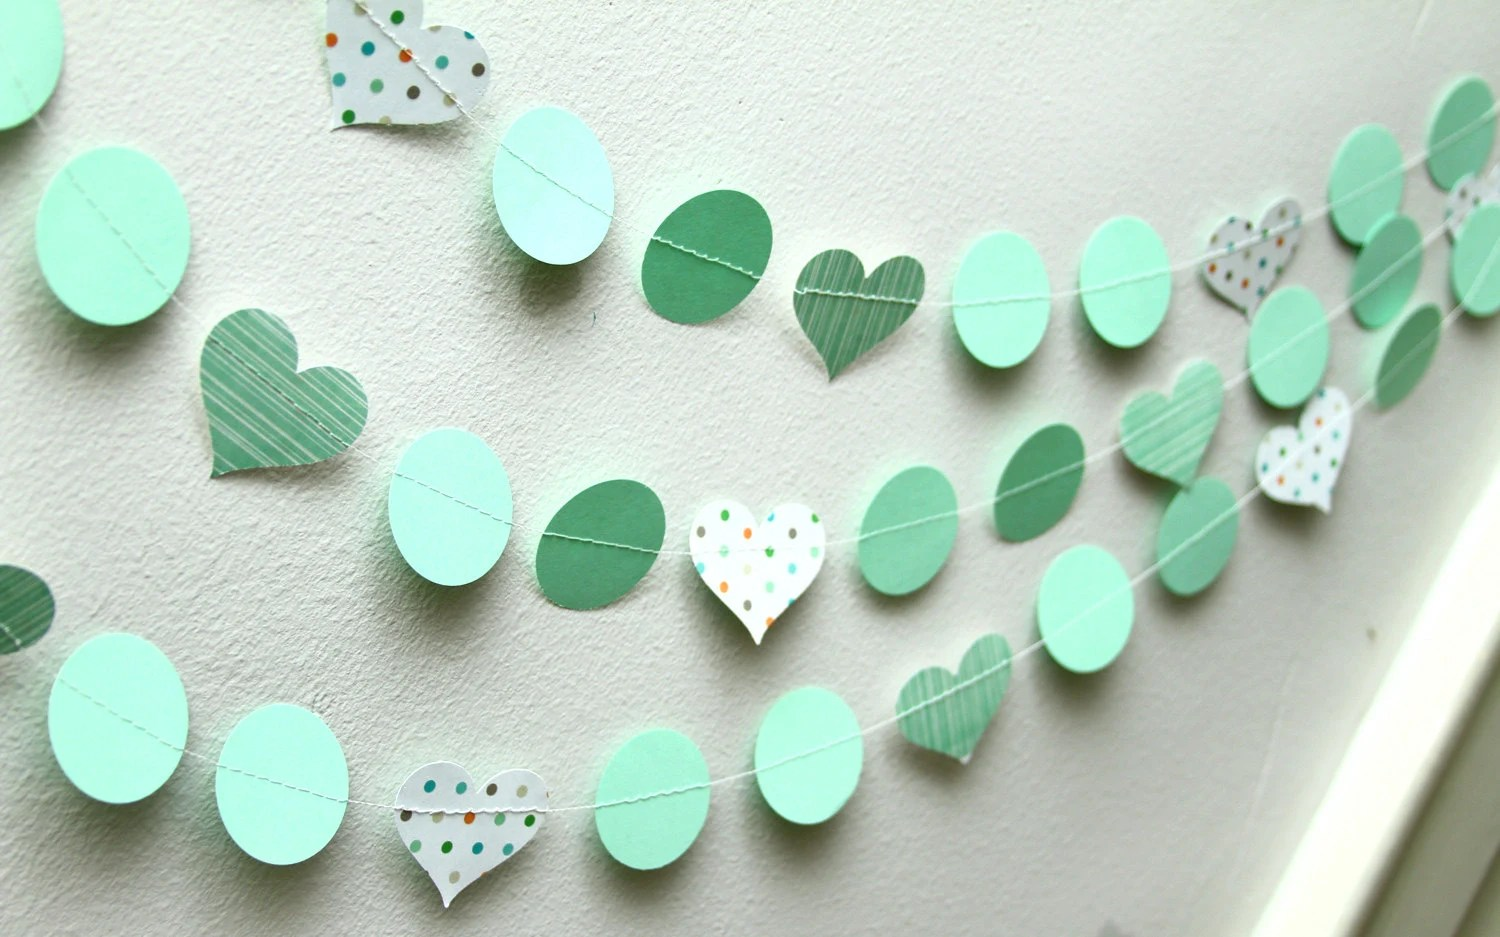 Mint Green and polka dots paper garland, birthday party, nursery, decoration - Shindiggery